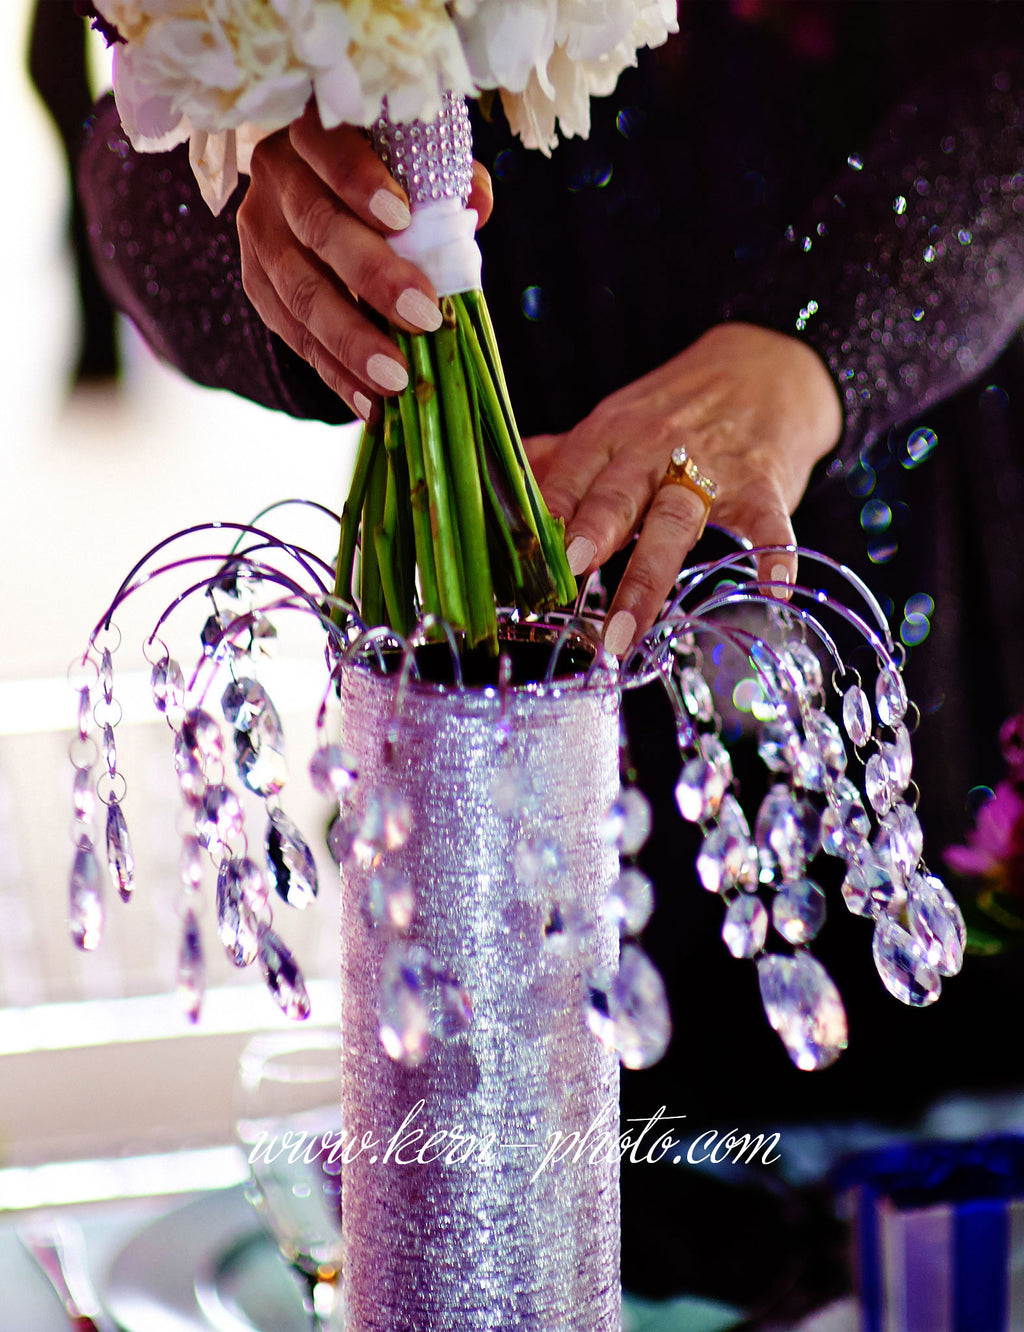 Just drop your bridal centerpieces into the vases to create these lovely wedding flower centerpieces.